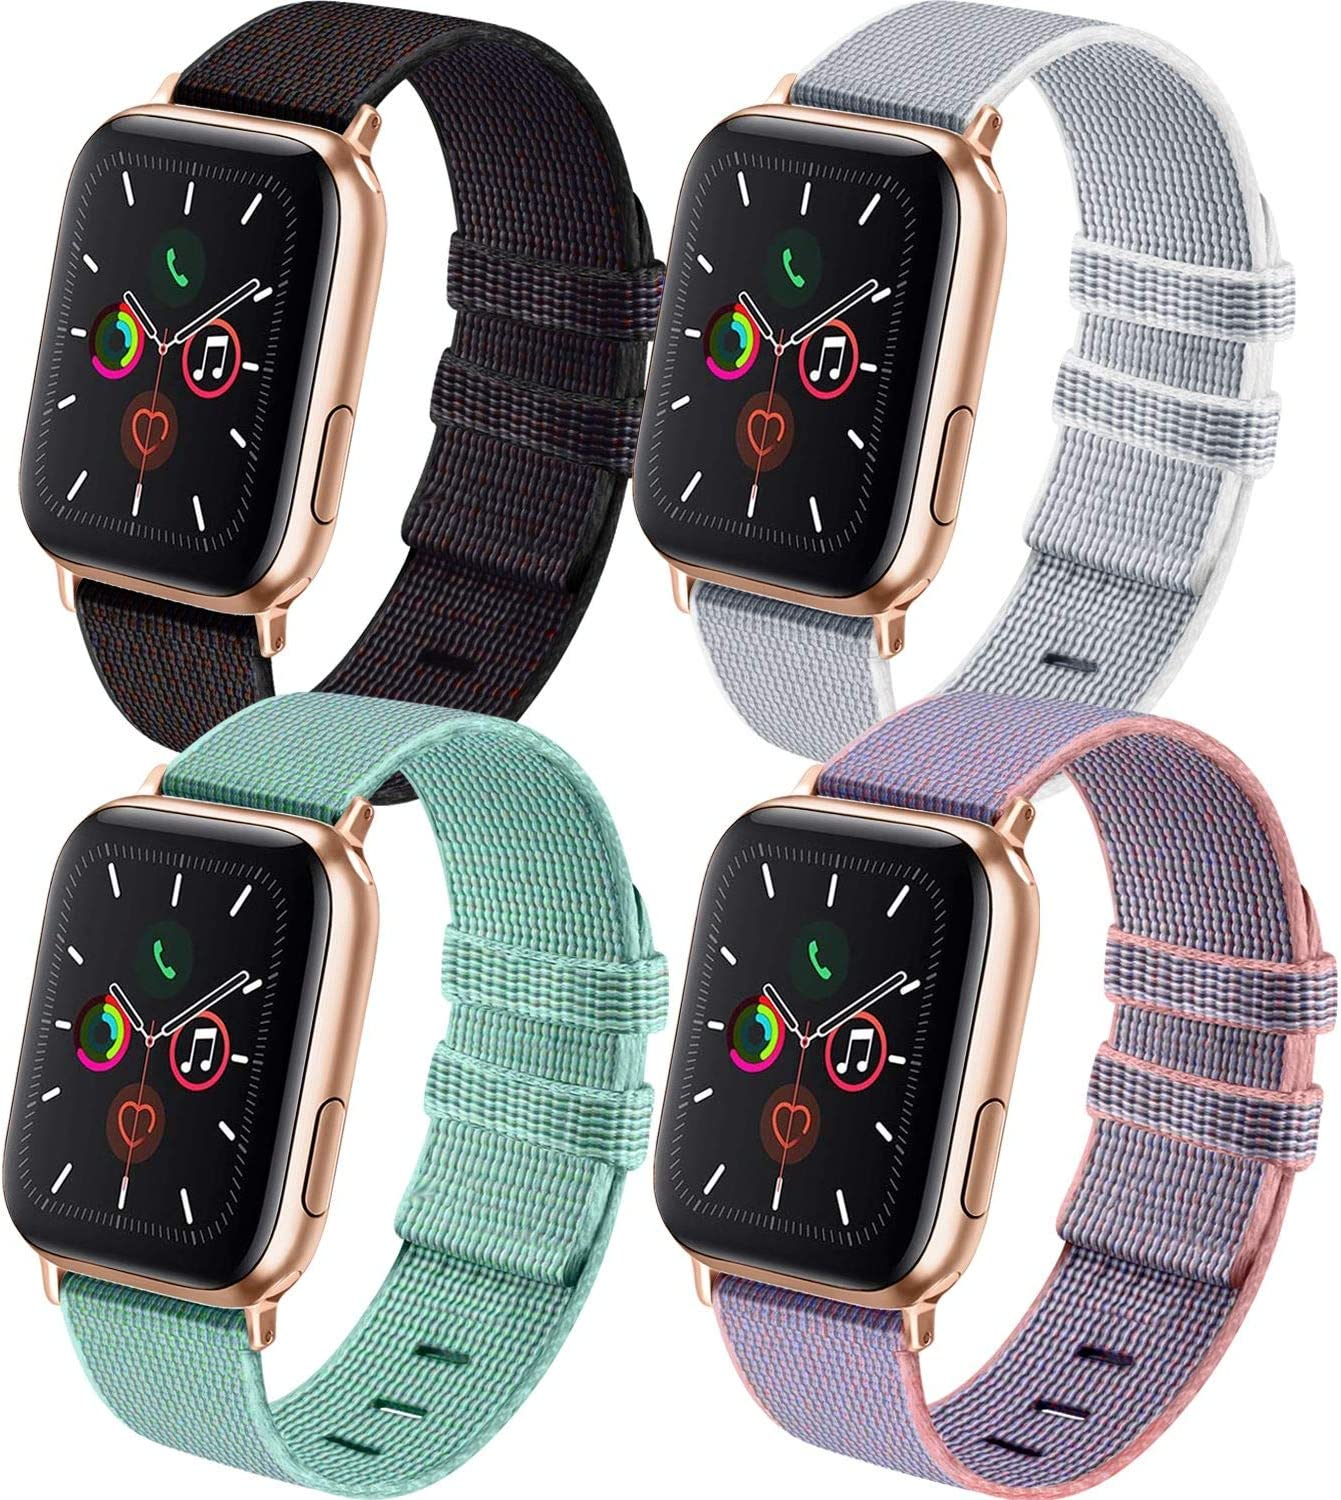 IEOVIEE Nylon Bands Compatible for Apple Watch Band 38mm 40mm 42mm 44mm, Adjustable Soft Lightweight Breathable Replacement Band for iWatch Series 6 5 4 3 2 1 SE